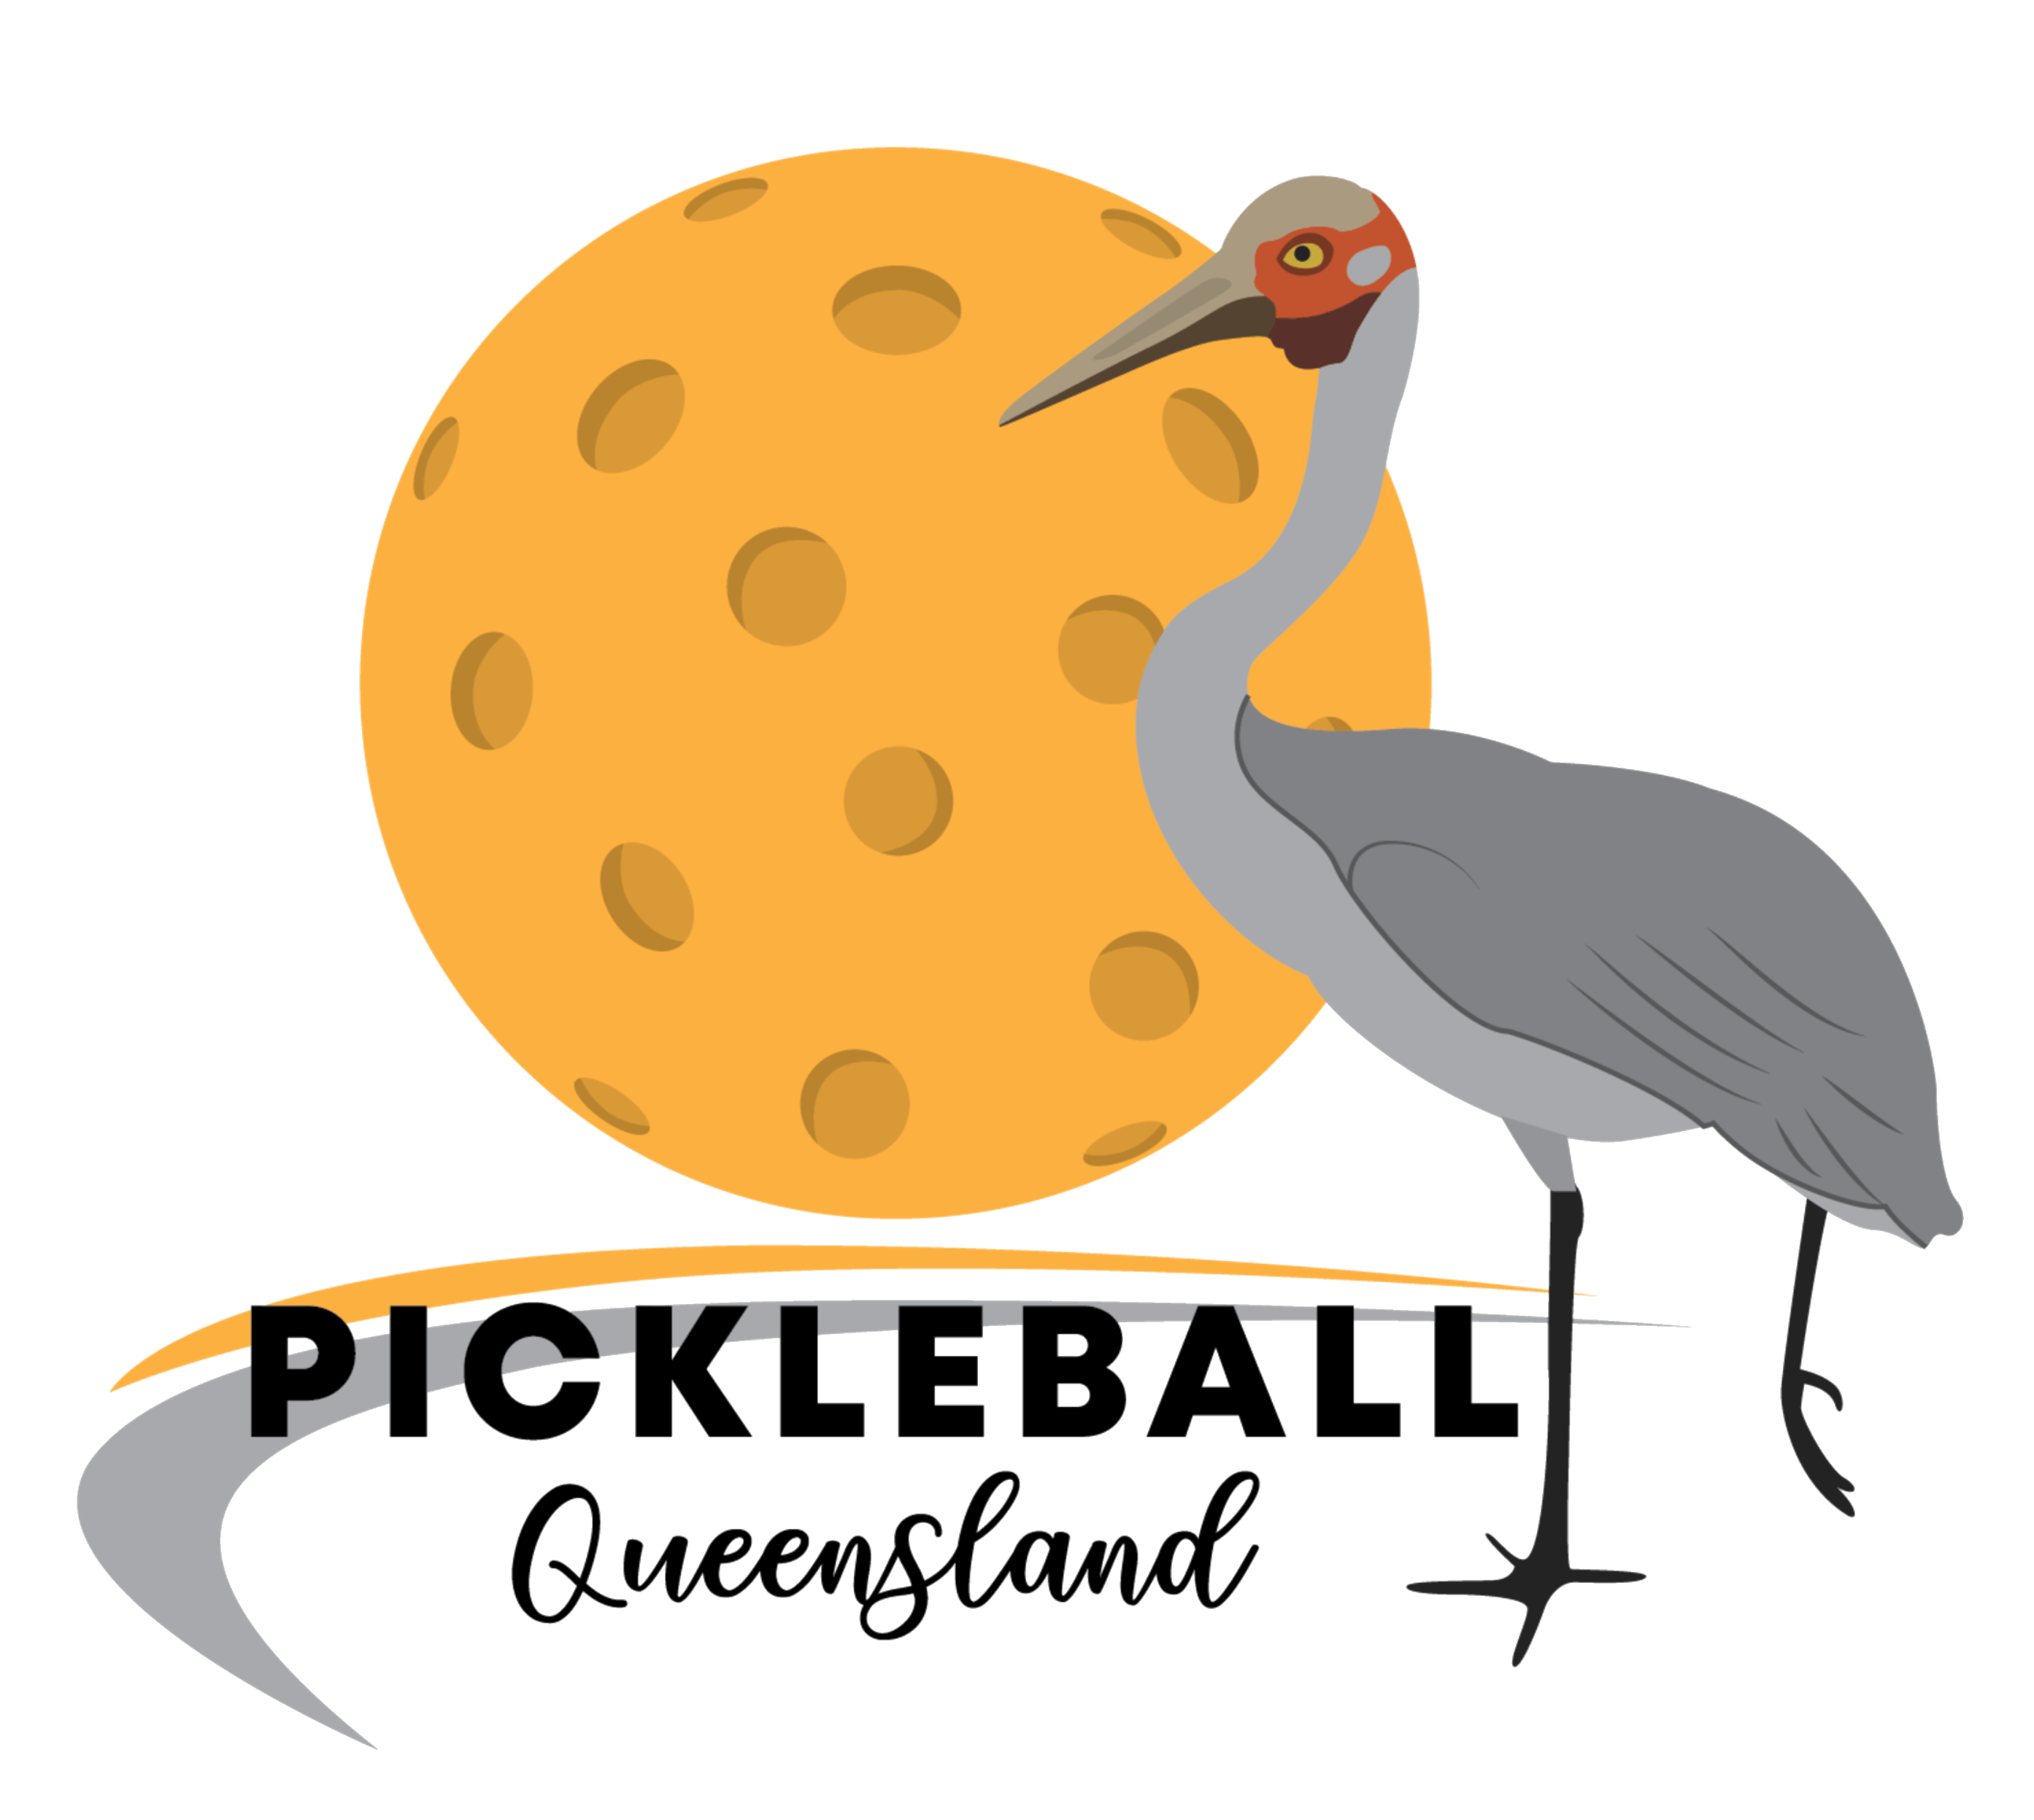 Pickleball Association Queensland